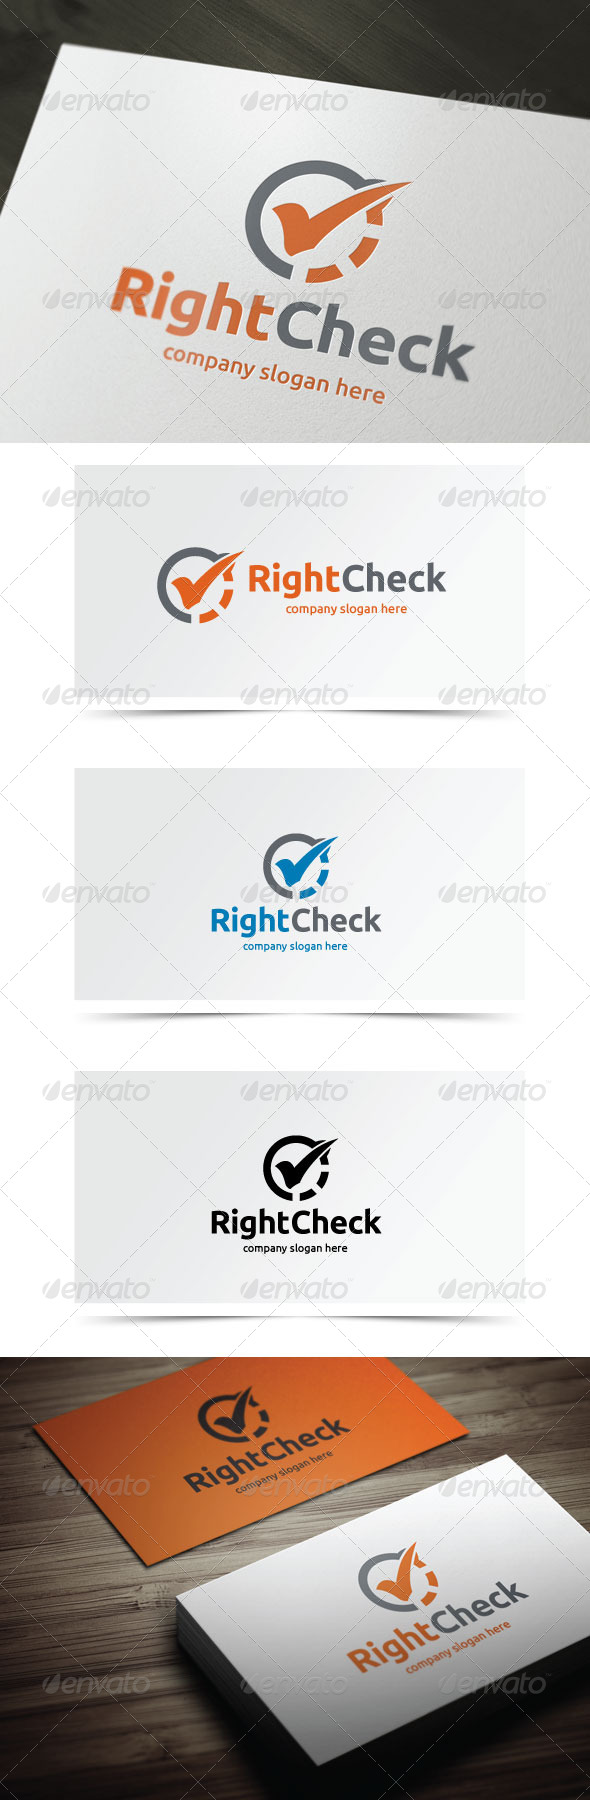 GraphicRiver Right Check 5741855